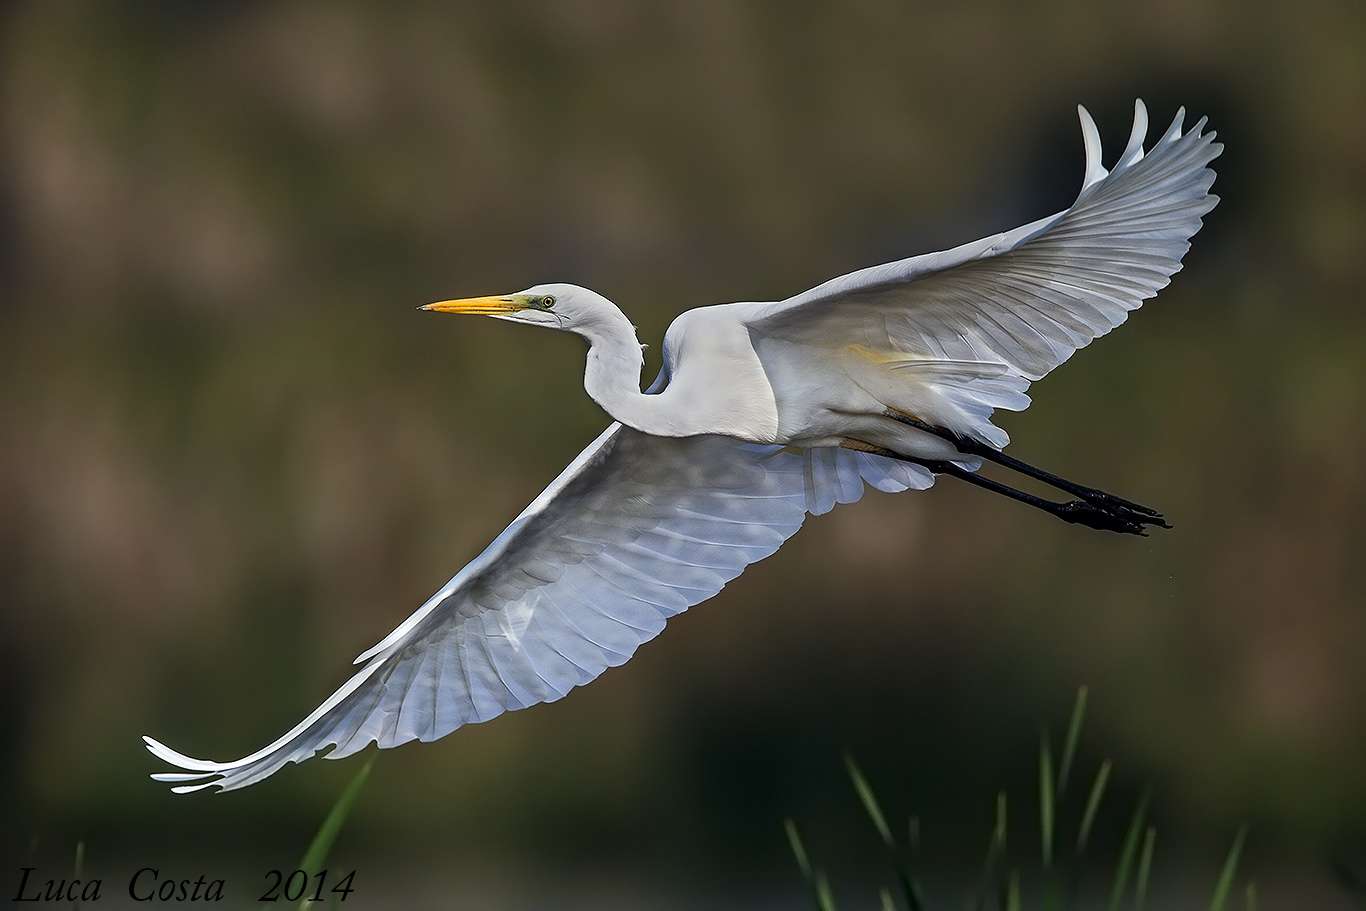 The elegance of the 'White Heron...